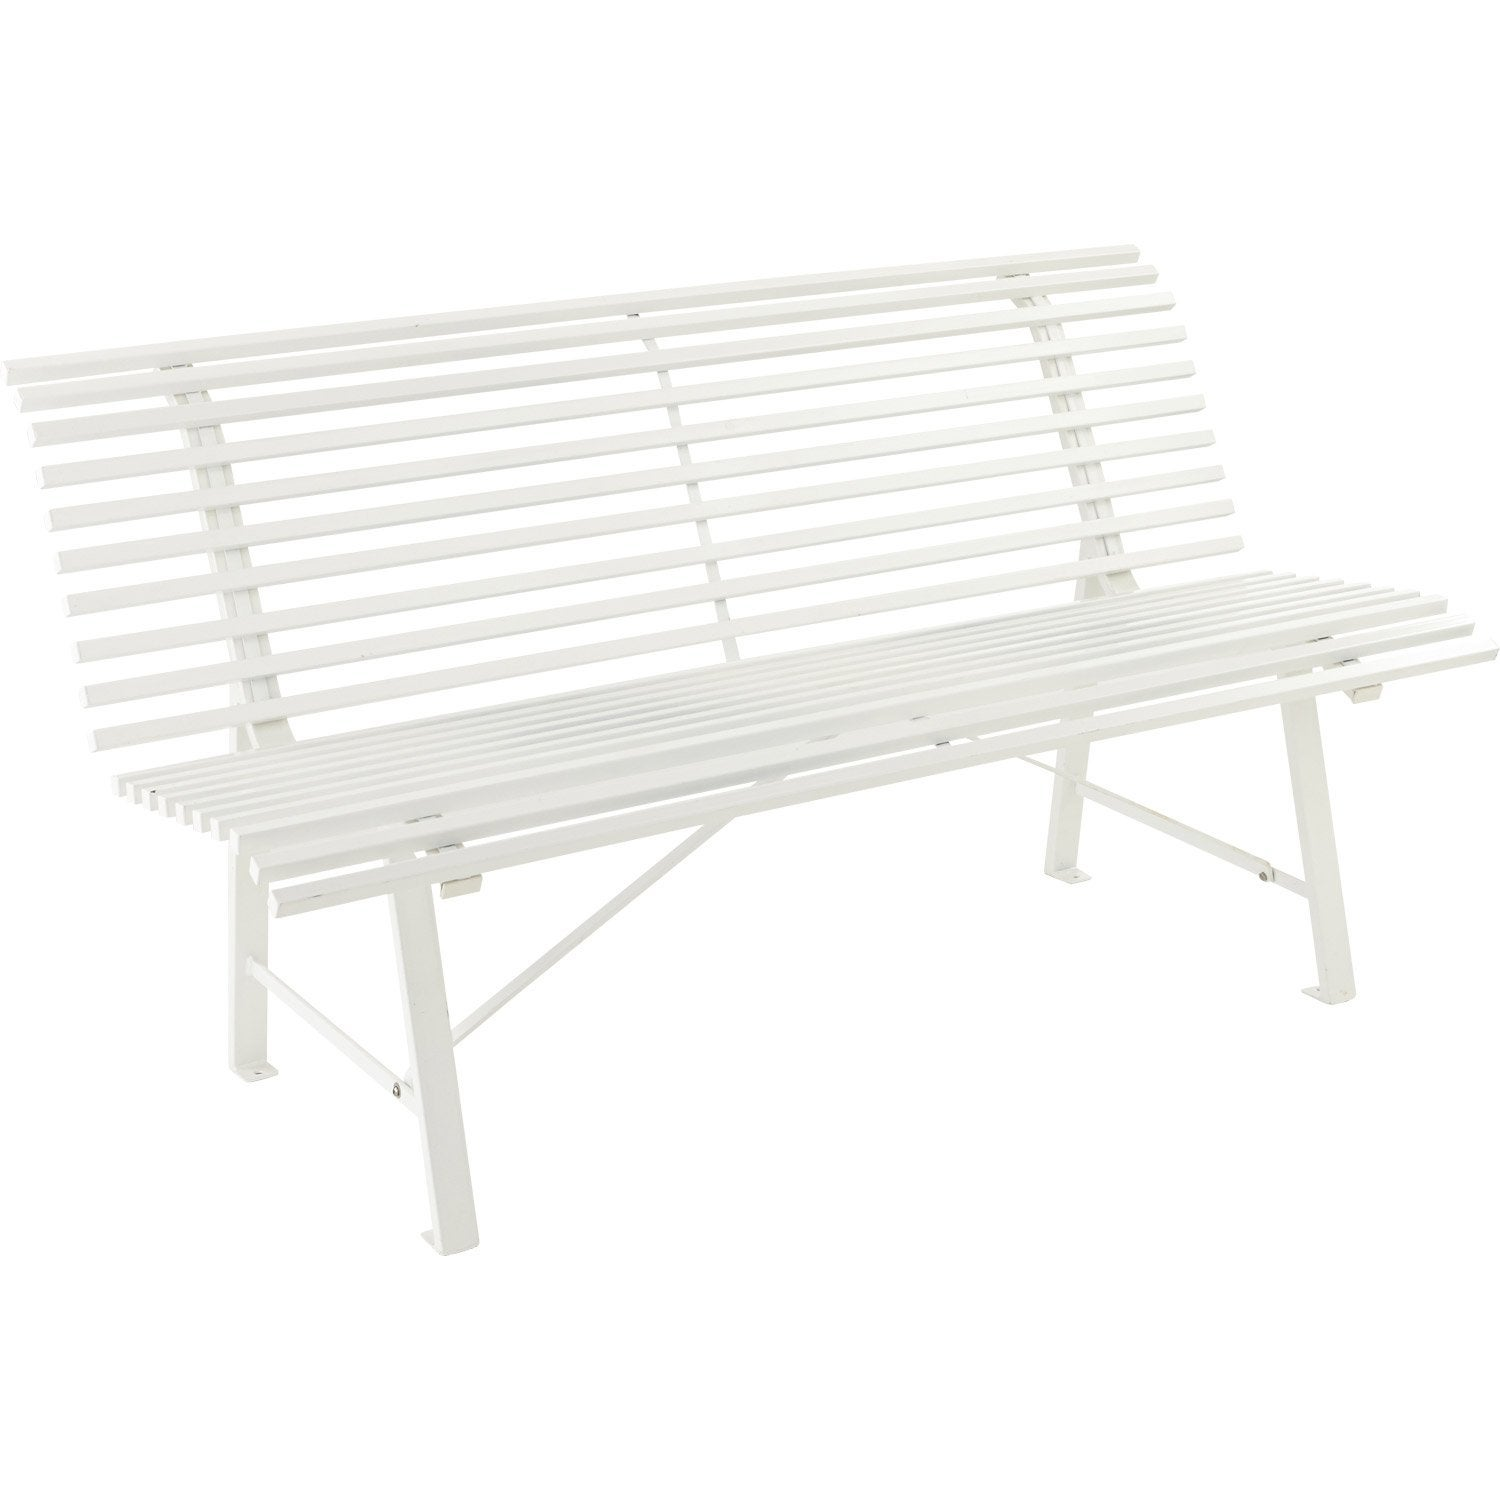 banc 3 places de jardin en acier blanc leroy merlin. Black Bedroom Furniture Sets. Home Design Ideas